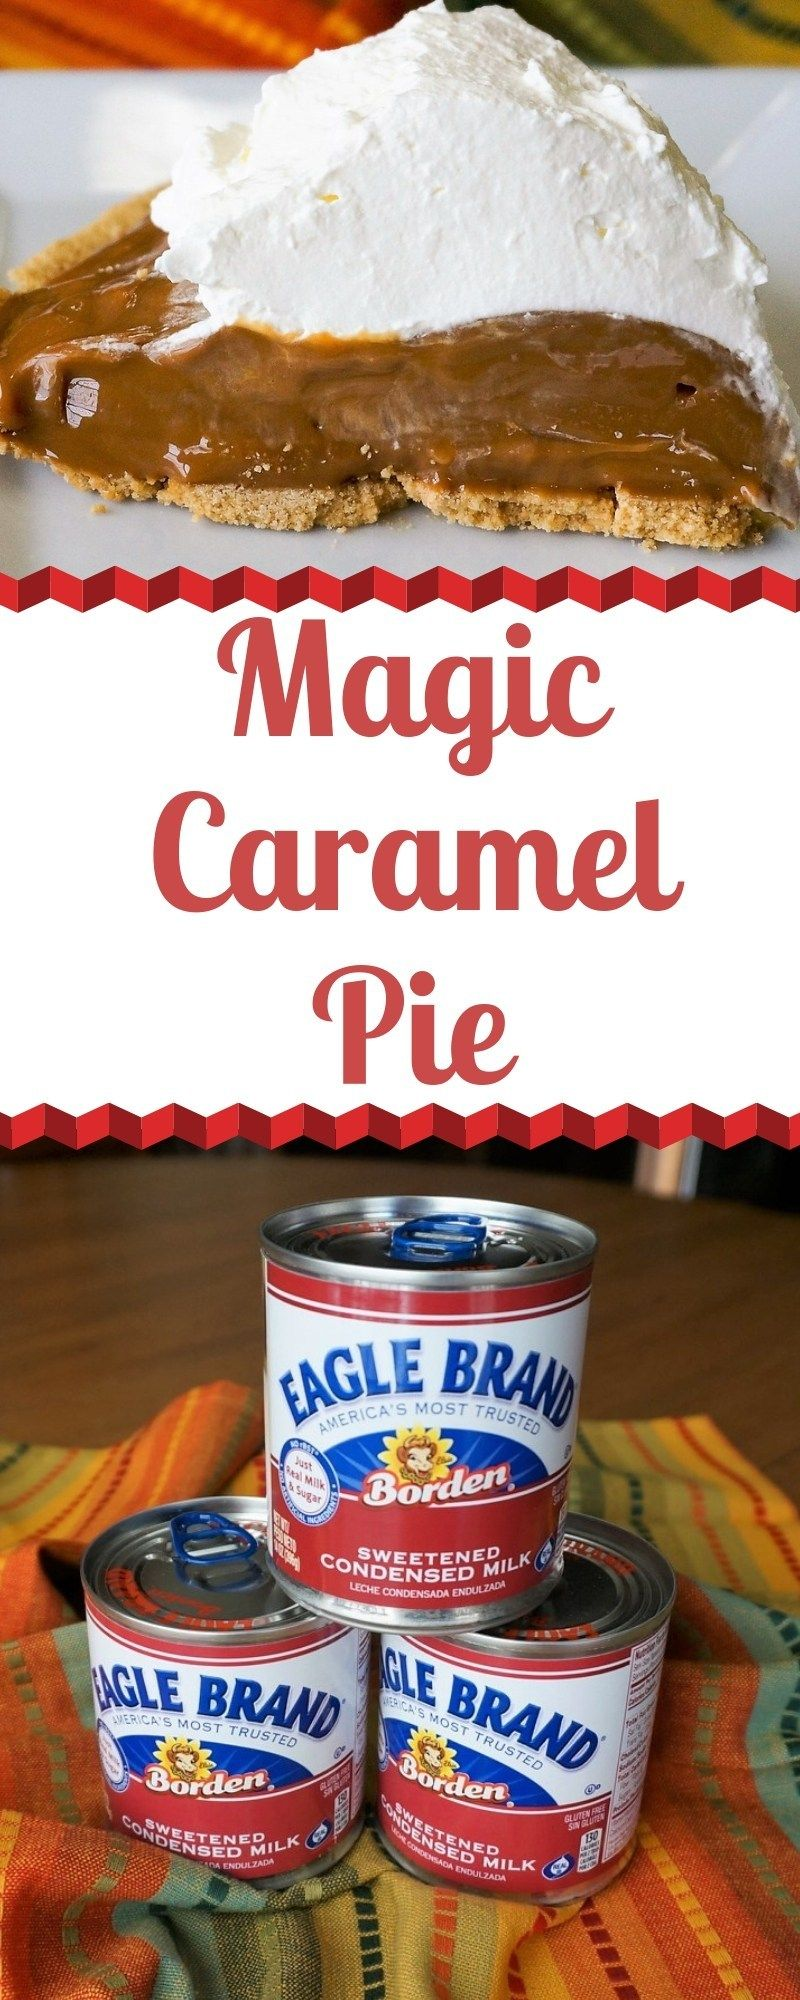 Magic Caramel Pie Recipe Unique Pie Recipes Caramel Pie Milk Recipes